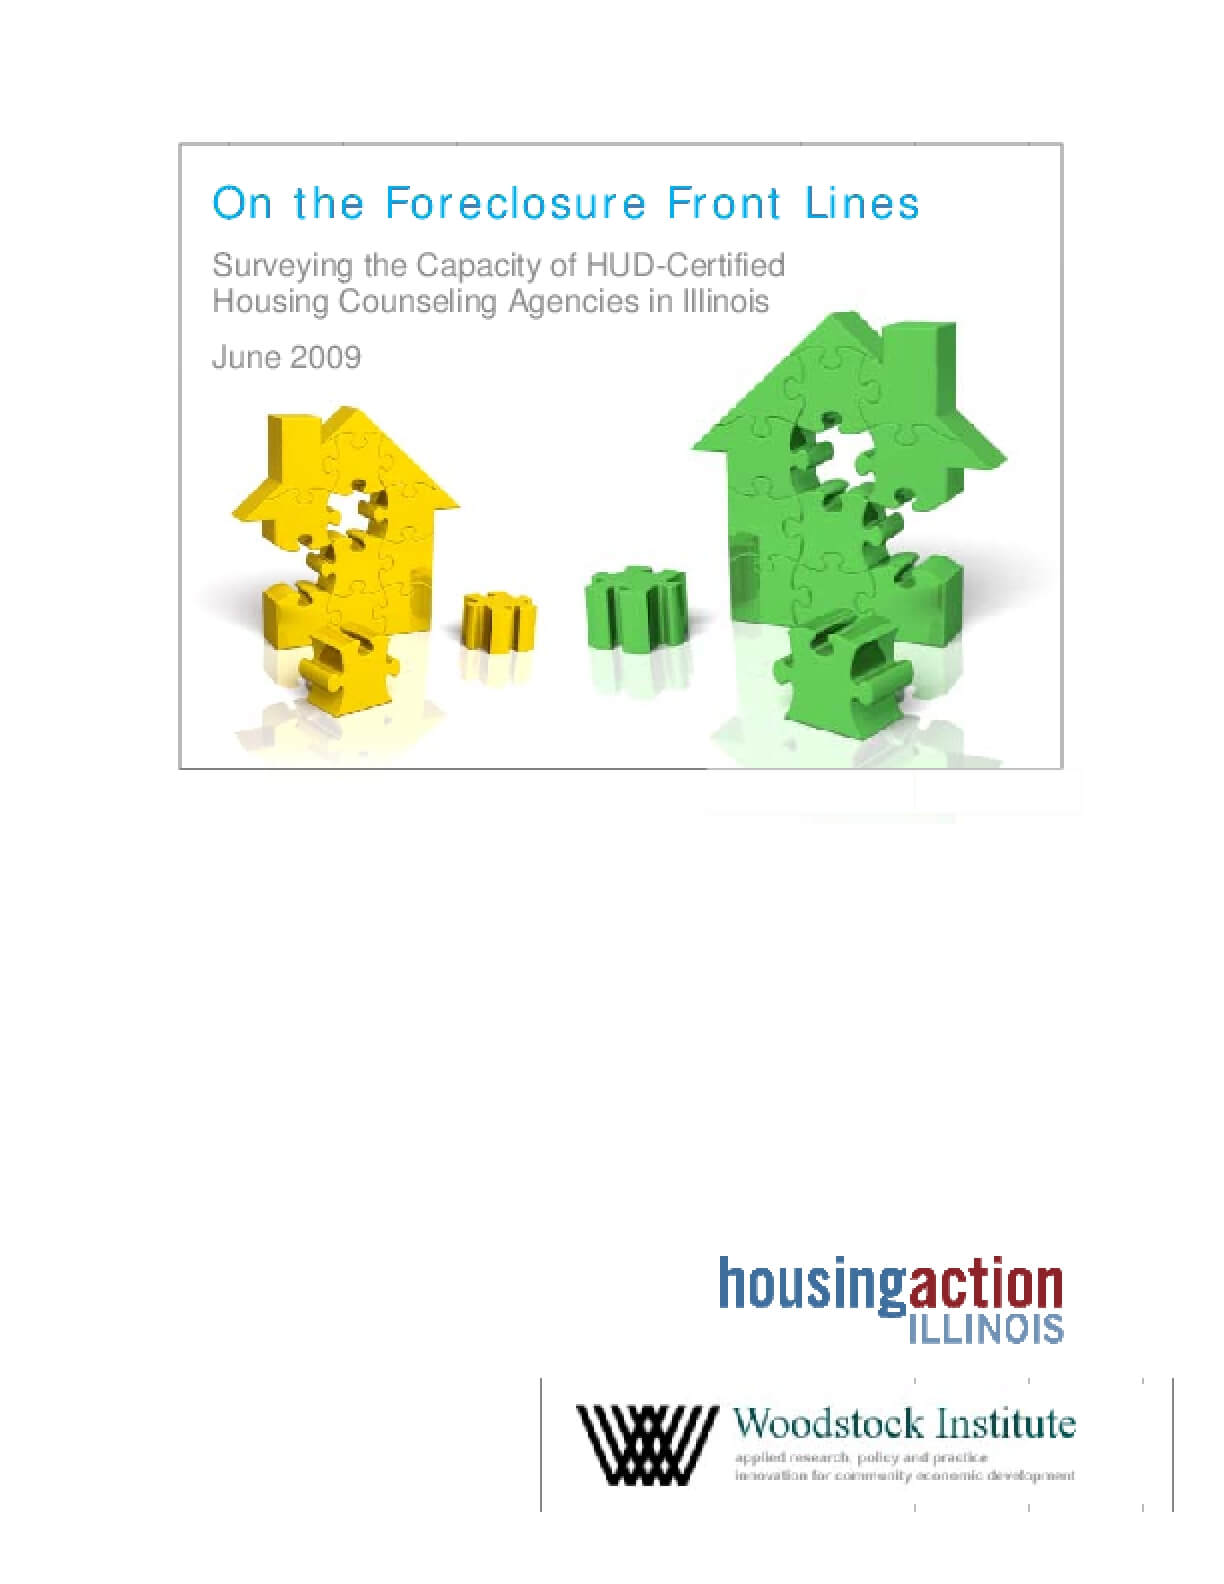 On the Foreclosure Front Lines: Surveying the Capacity of Hud-Certified Housing Counseling Agencies in Illinois